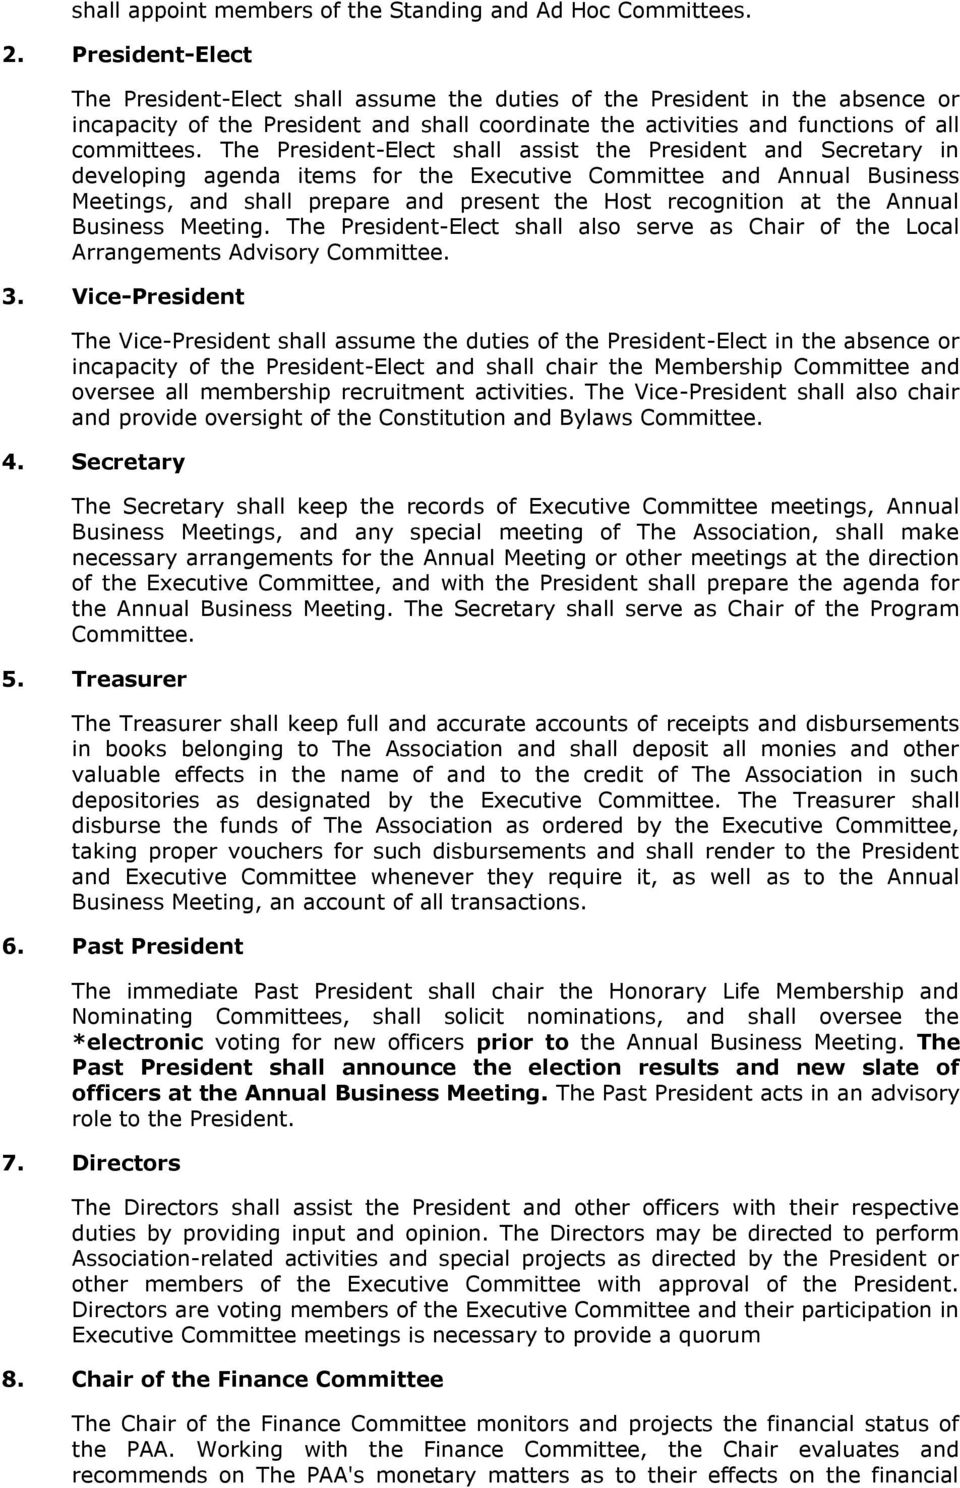 The President-Elect shall assist the President and Secretary in developing agenda items for the Executive Committee and Annual Business Meetings, and shall prepare and present the Host recognition at